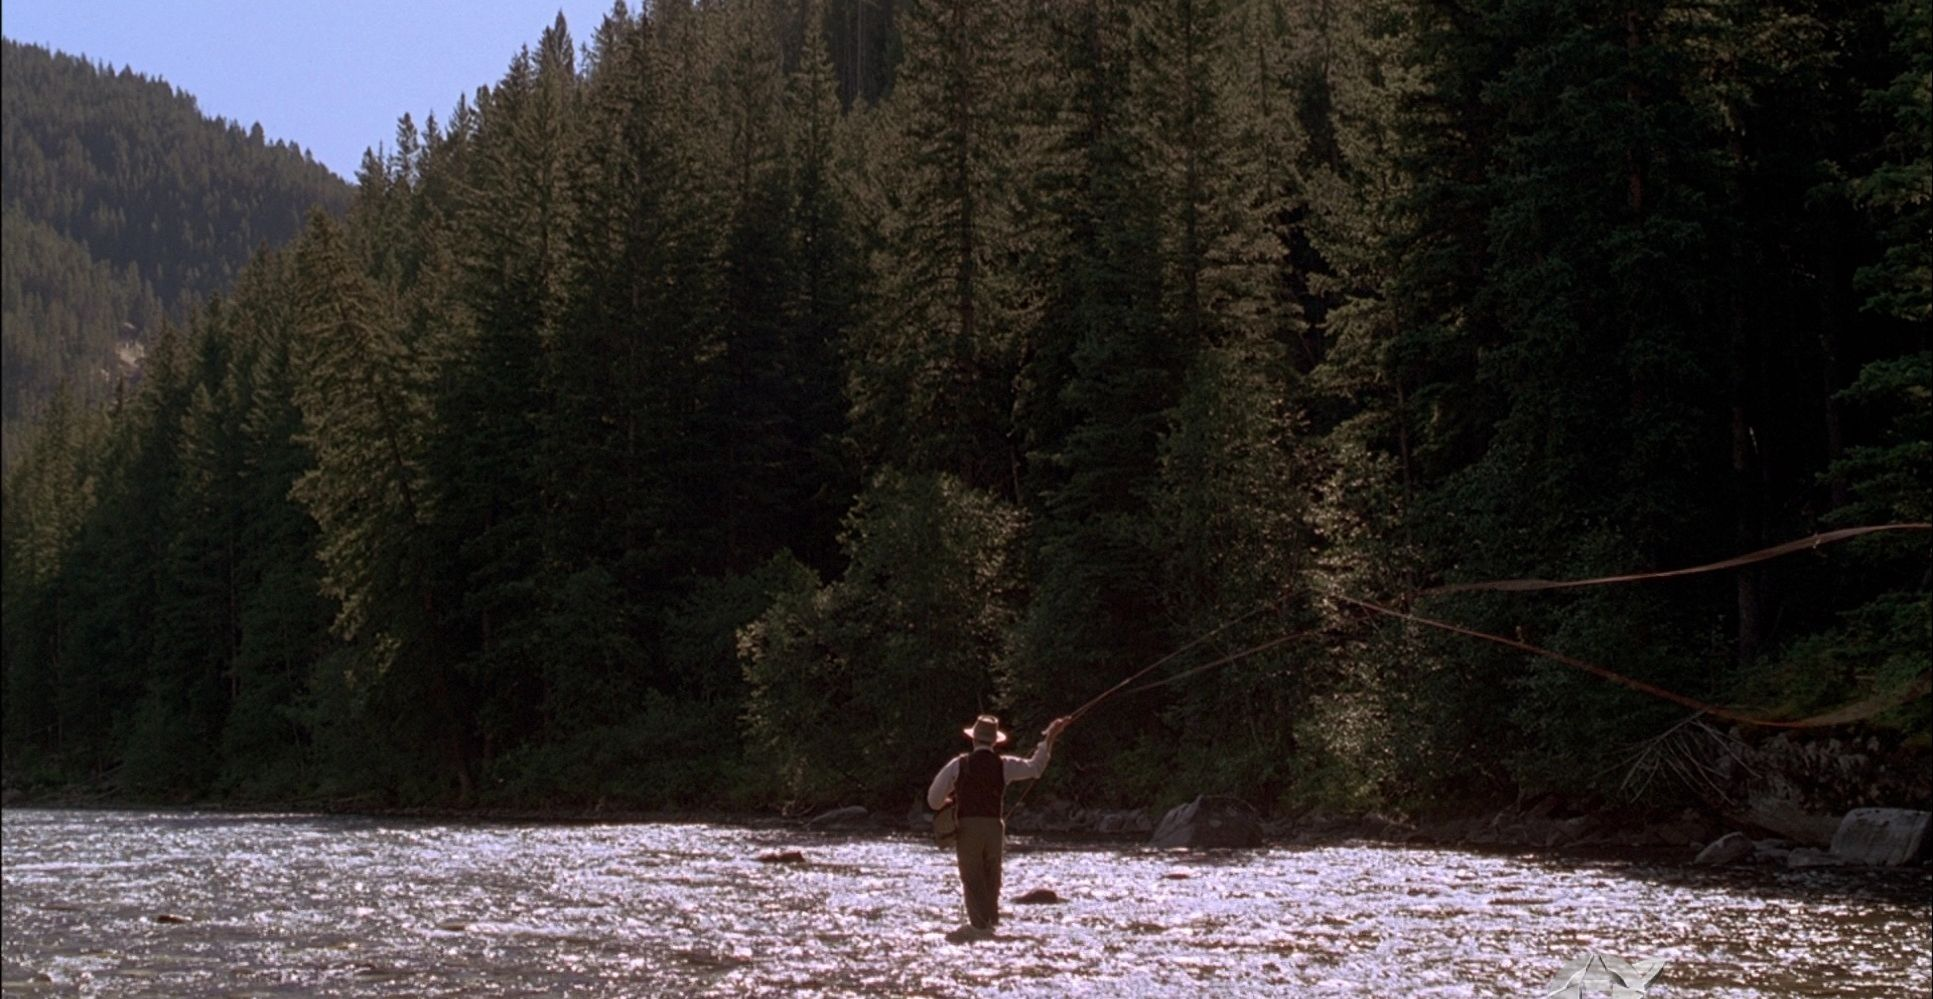 Norman-Maclean-A-River-Runs-Through-It-a-river-runs-through-it